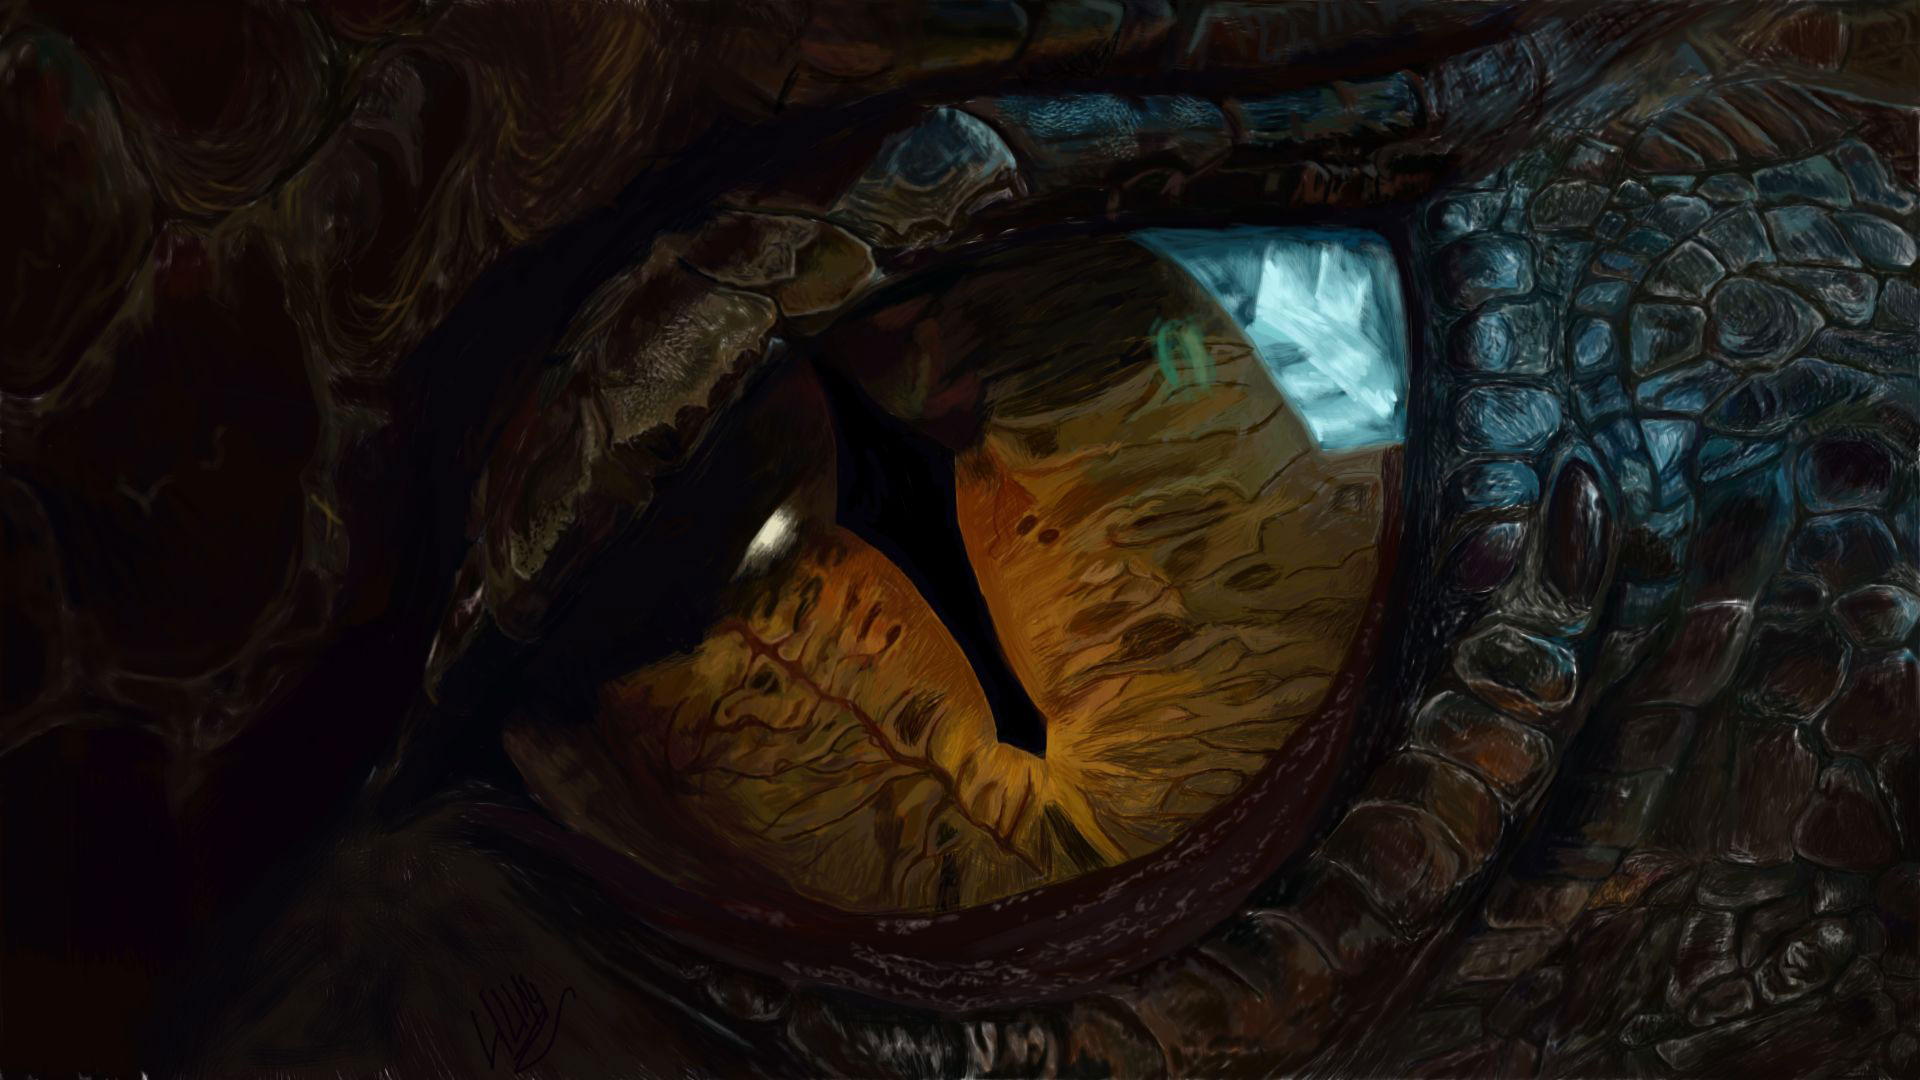 The Hobbit 3 The Battle of the Five Armies 2014 Movie Smaug Desktop 1920x1080